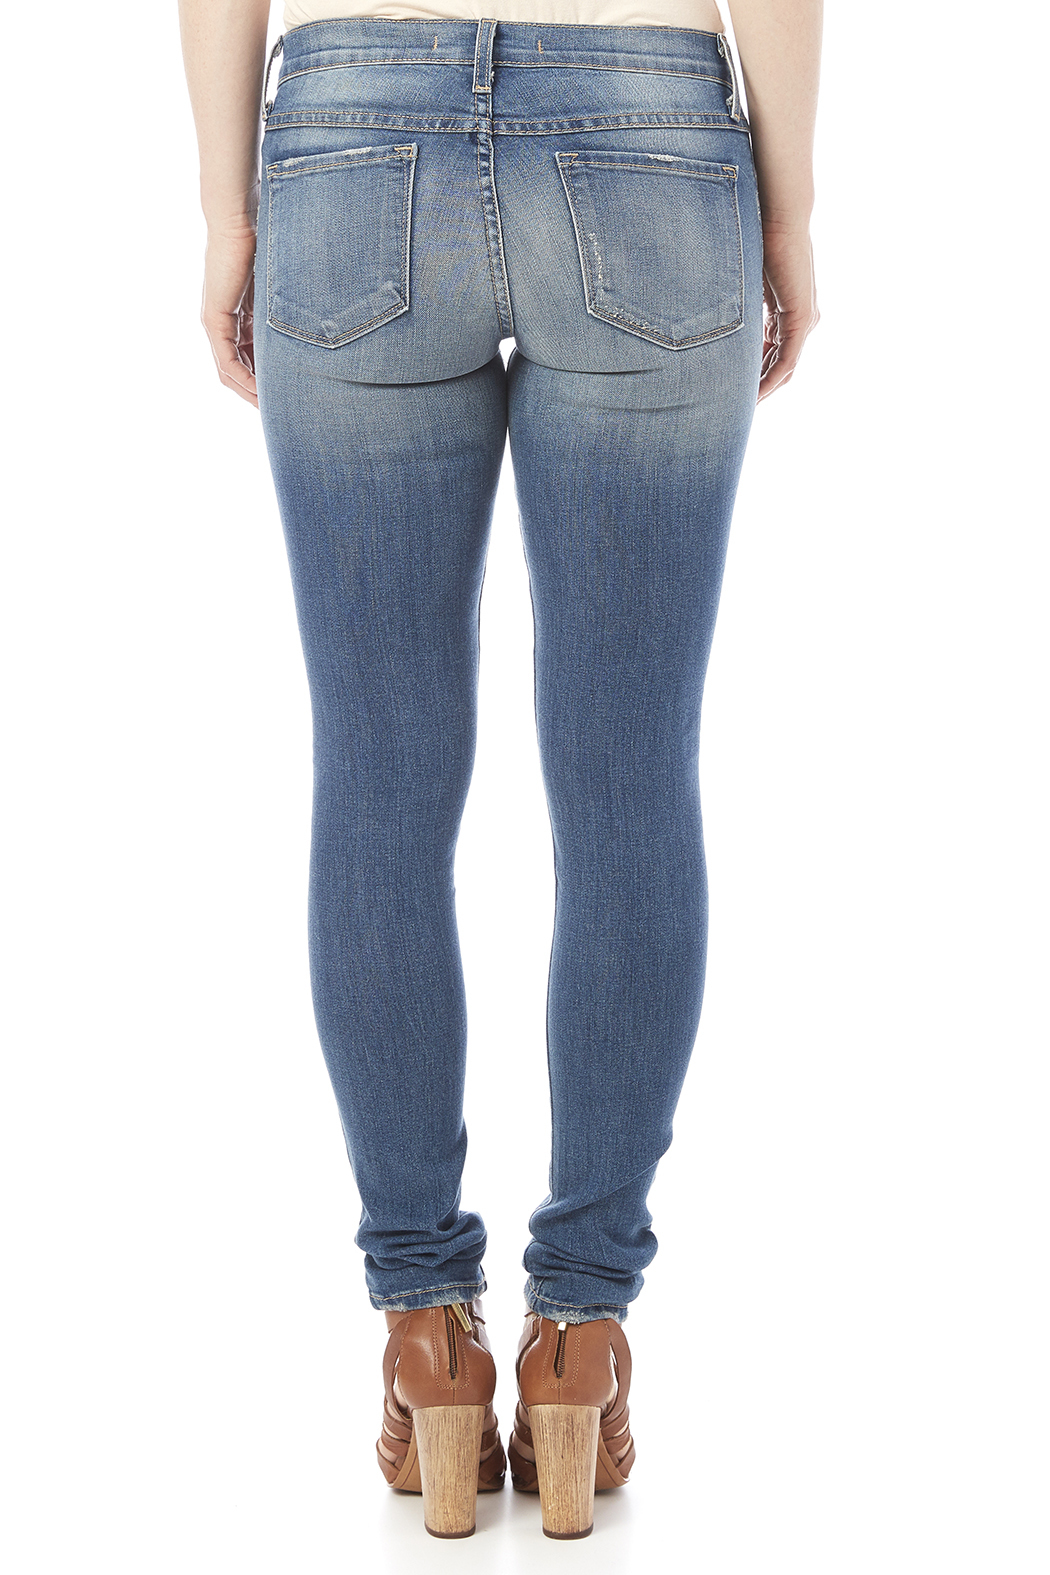 Flying Monkey Distressed Skinny Jean - Back Cropped Image